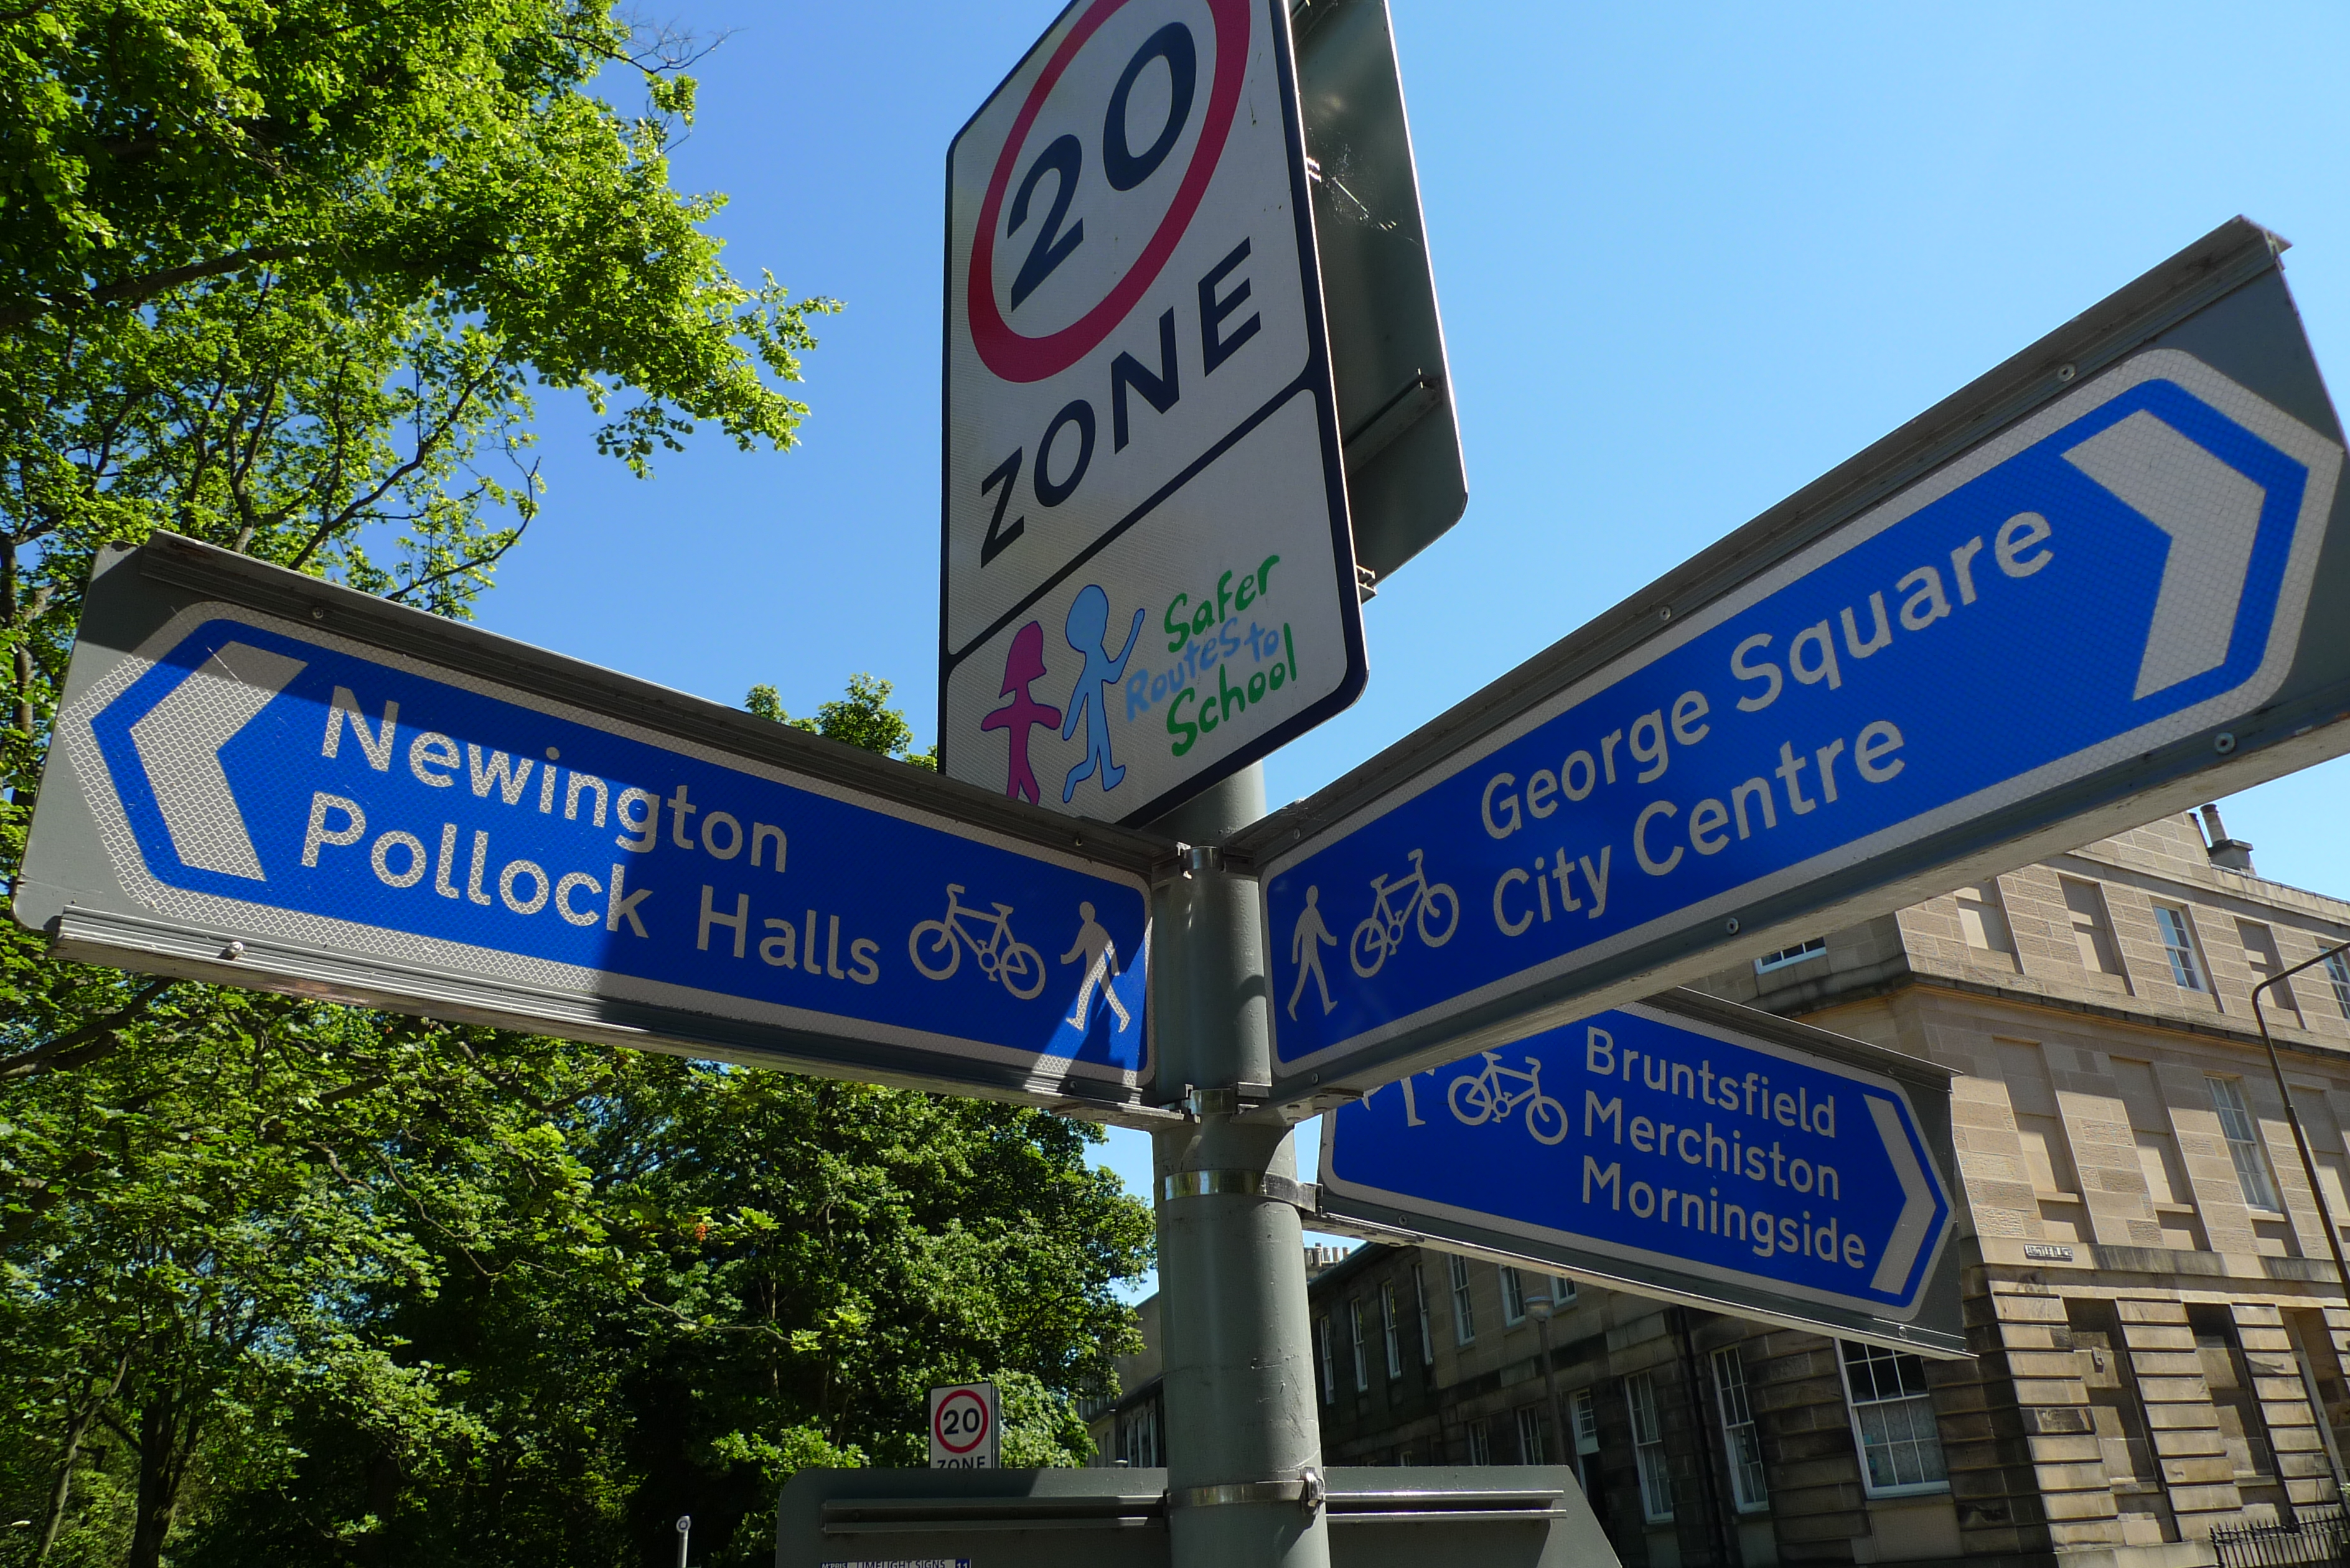 Cycling signs across the city